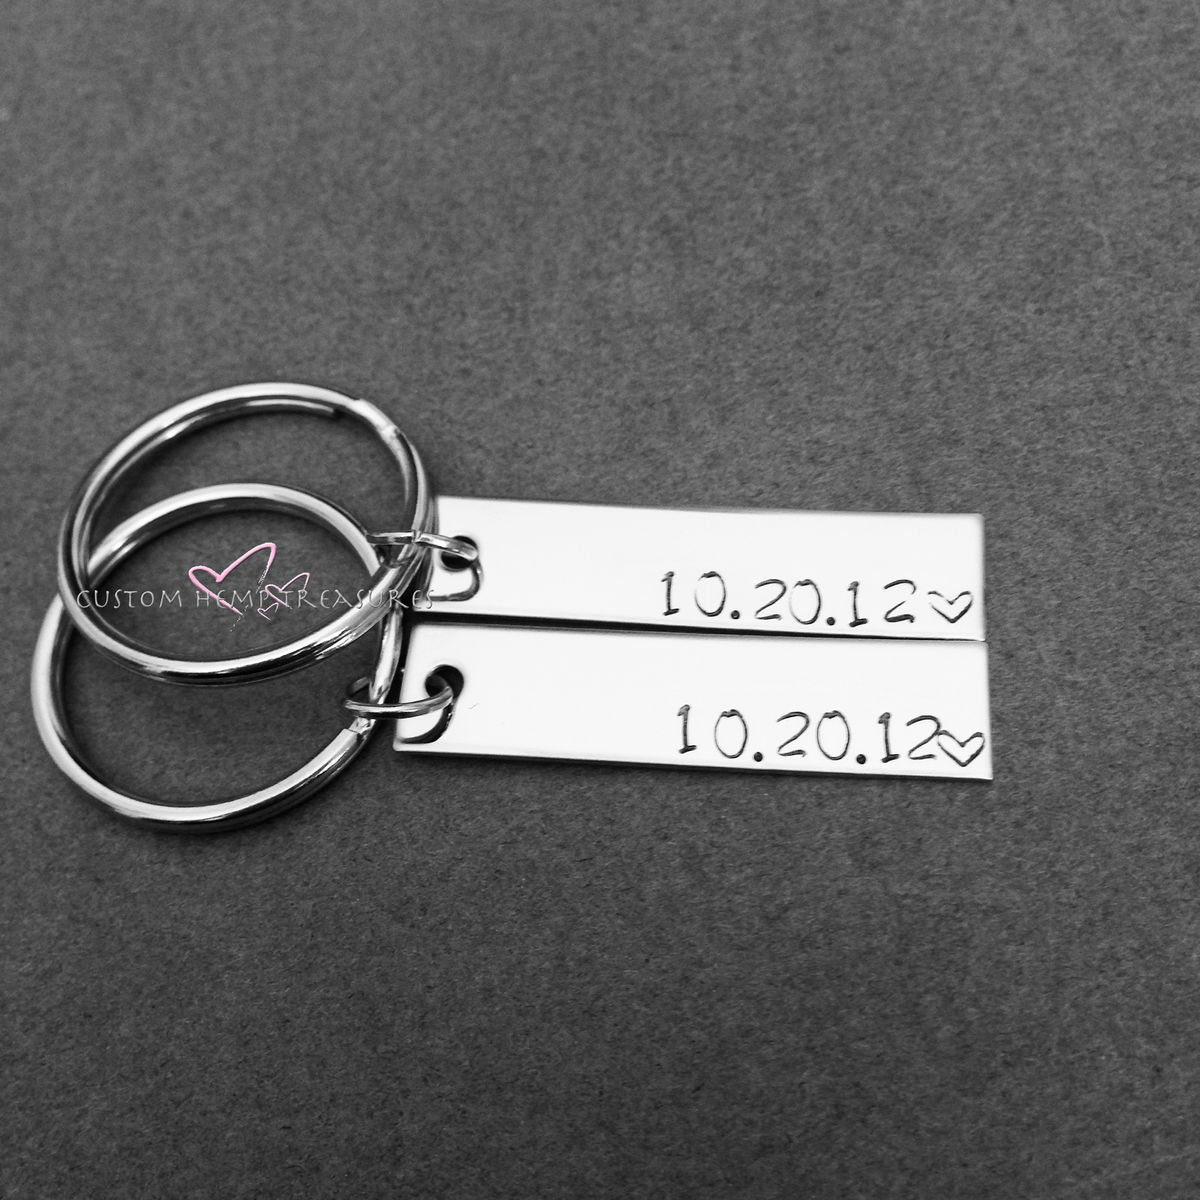 Stamped Date Bar Keychains, Couples keychains - product image